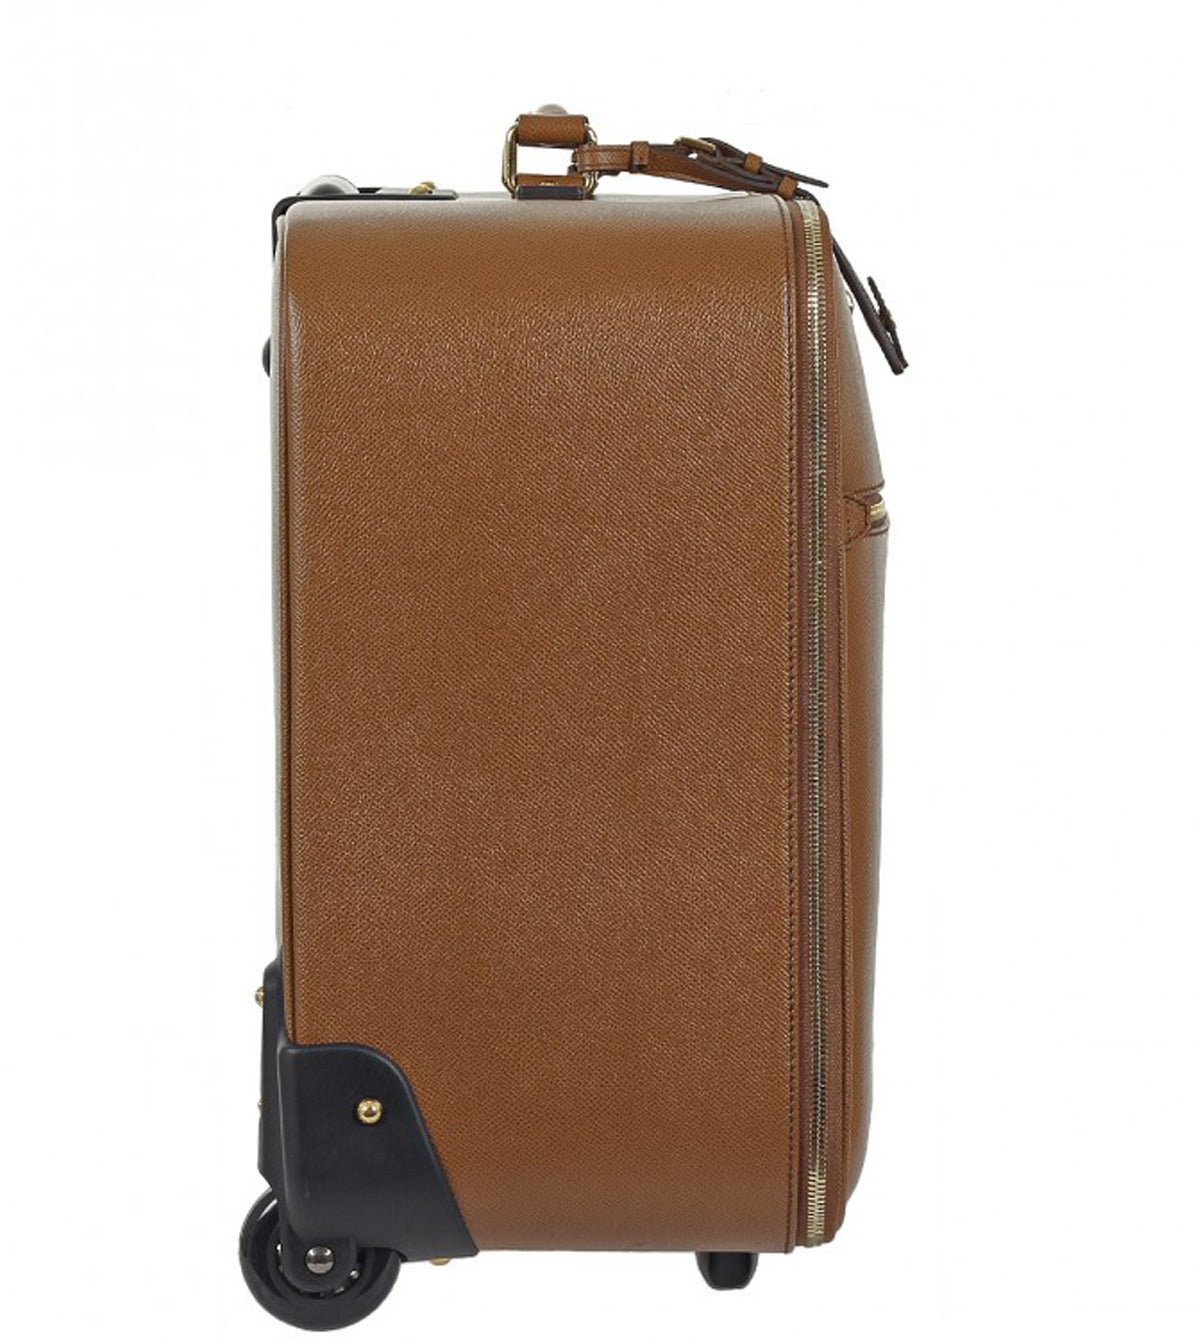 Brown textured leather carry on trolley